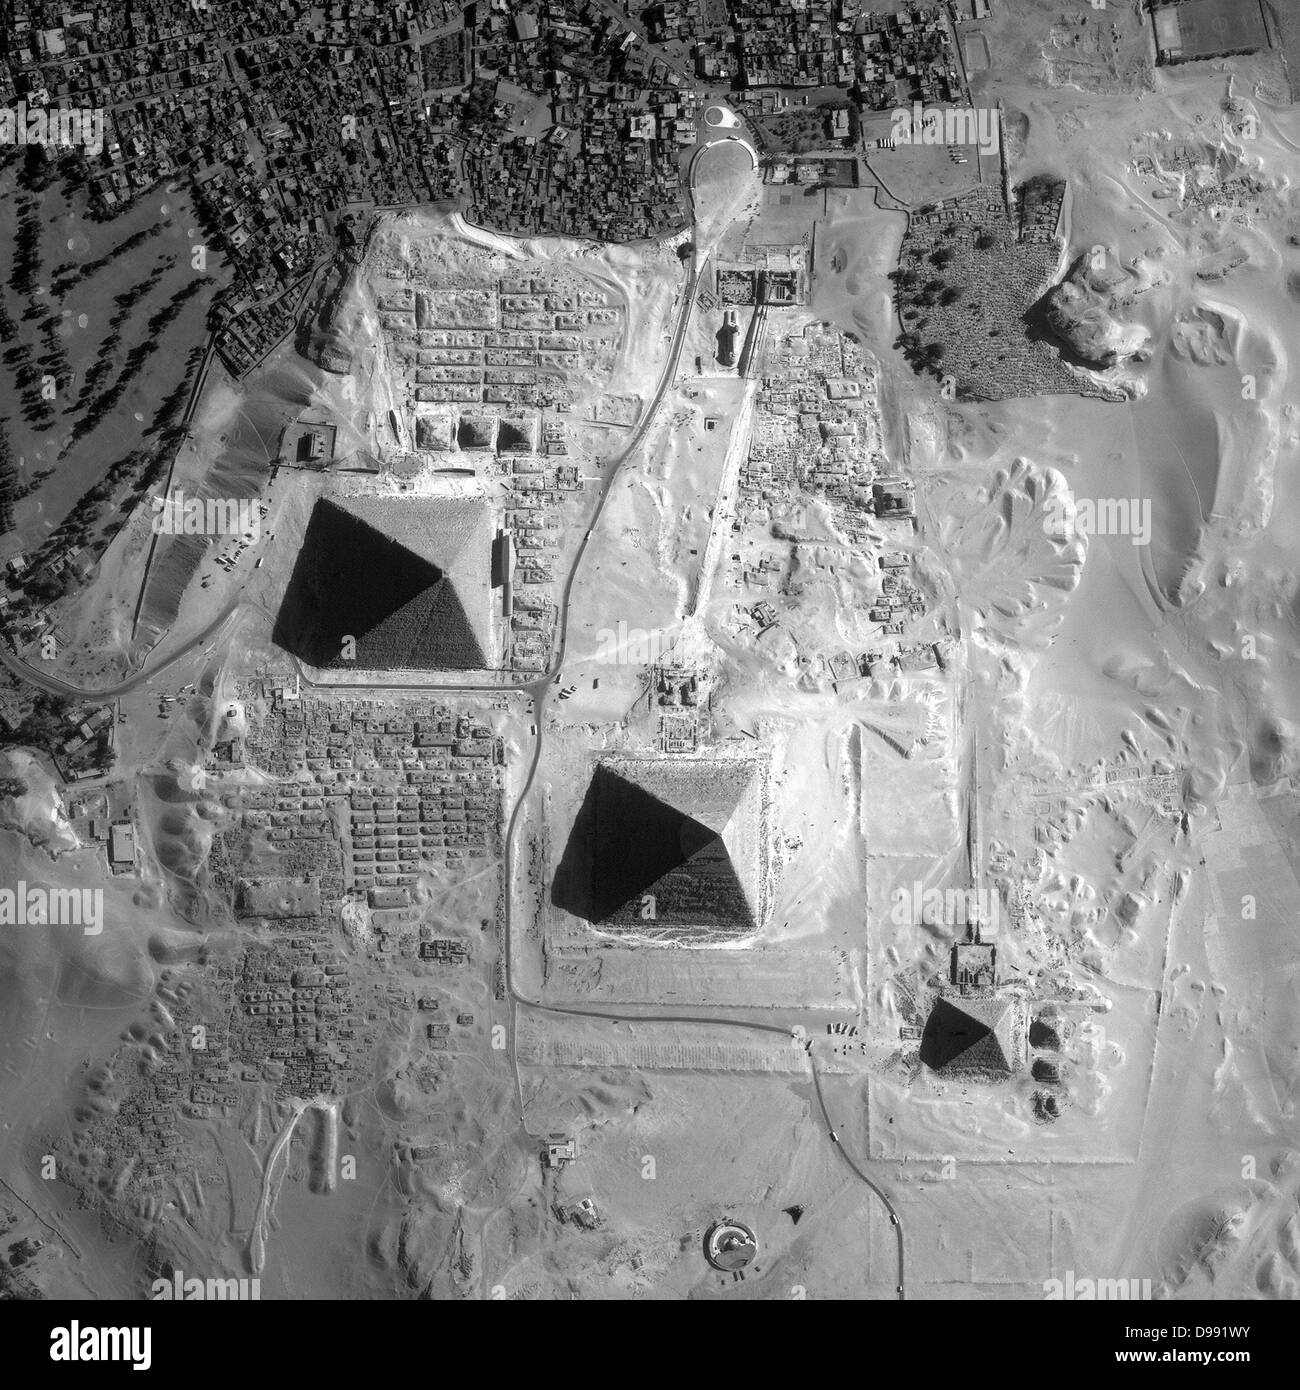 Satellite view of the Pyramids of Giza